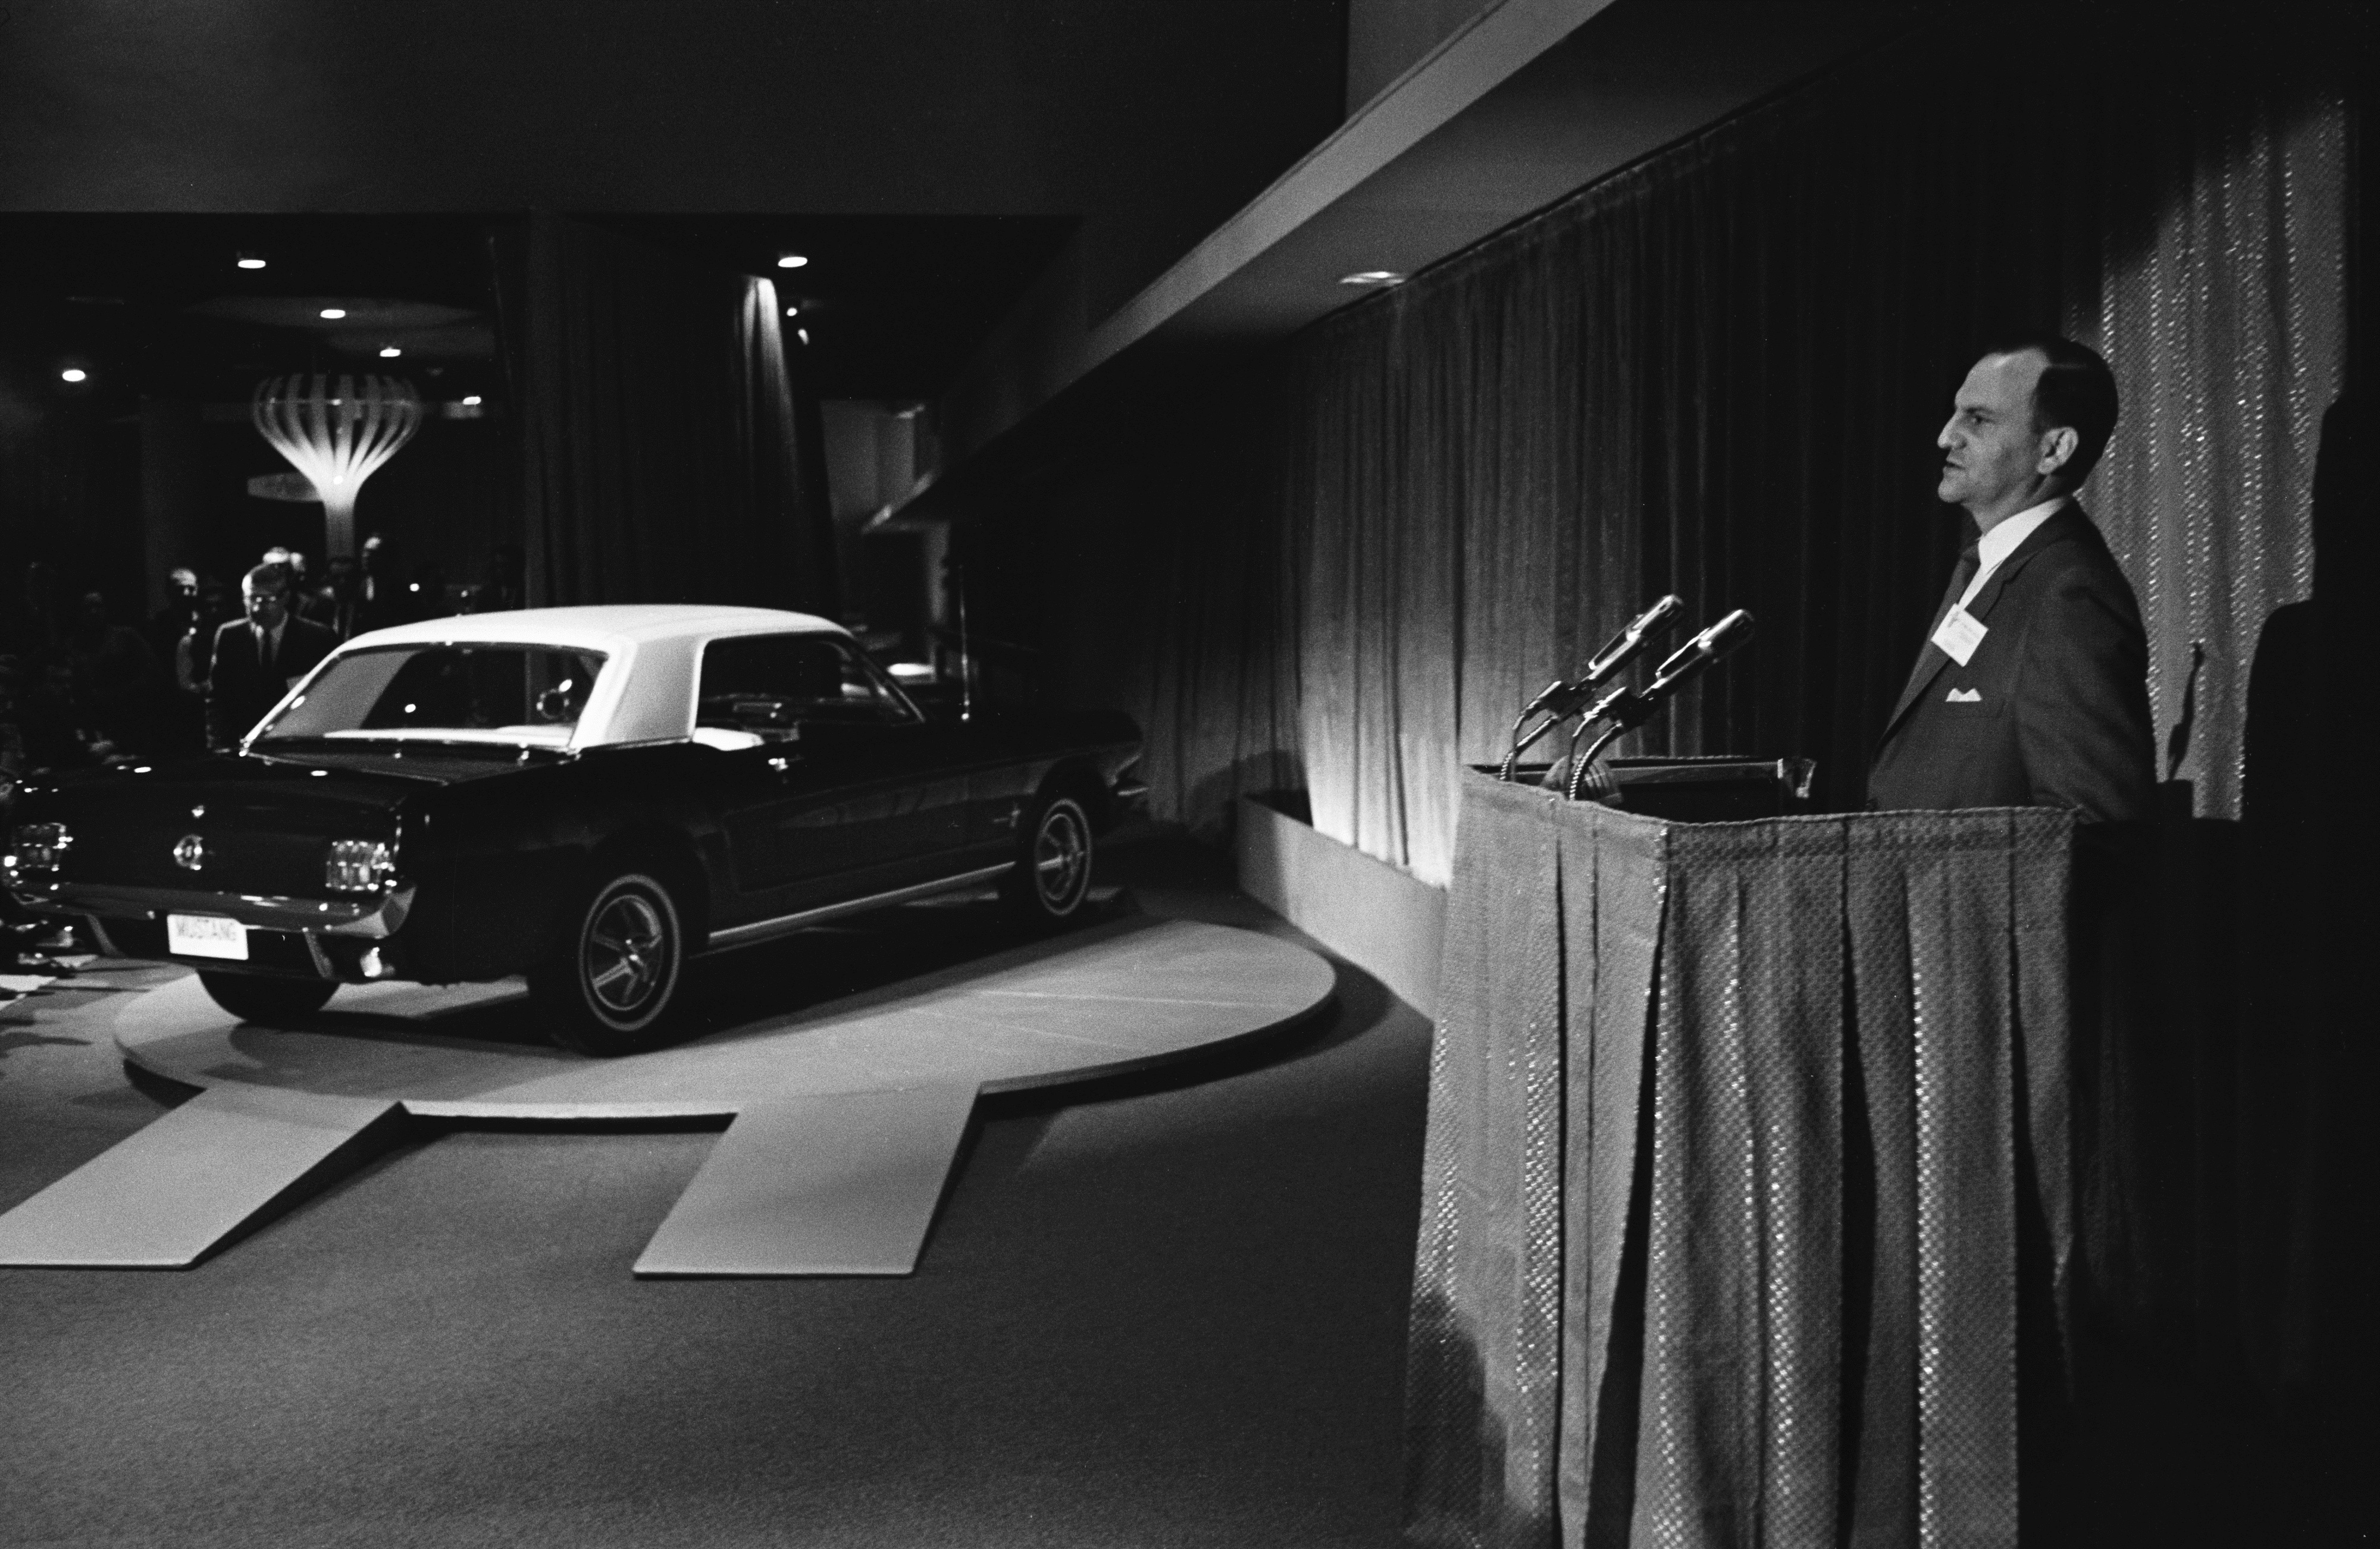 1964_worlds_fair_ford_mustang_introduction_lee_iacocca_neg_138322-234